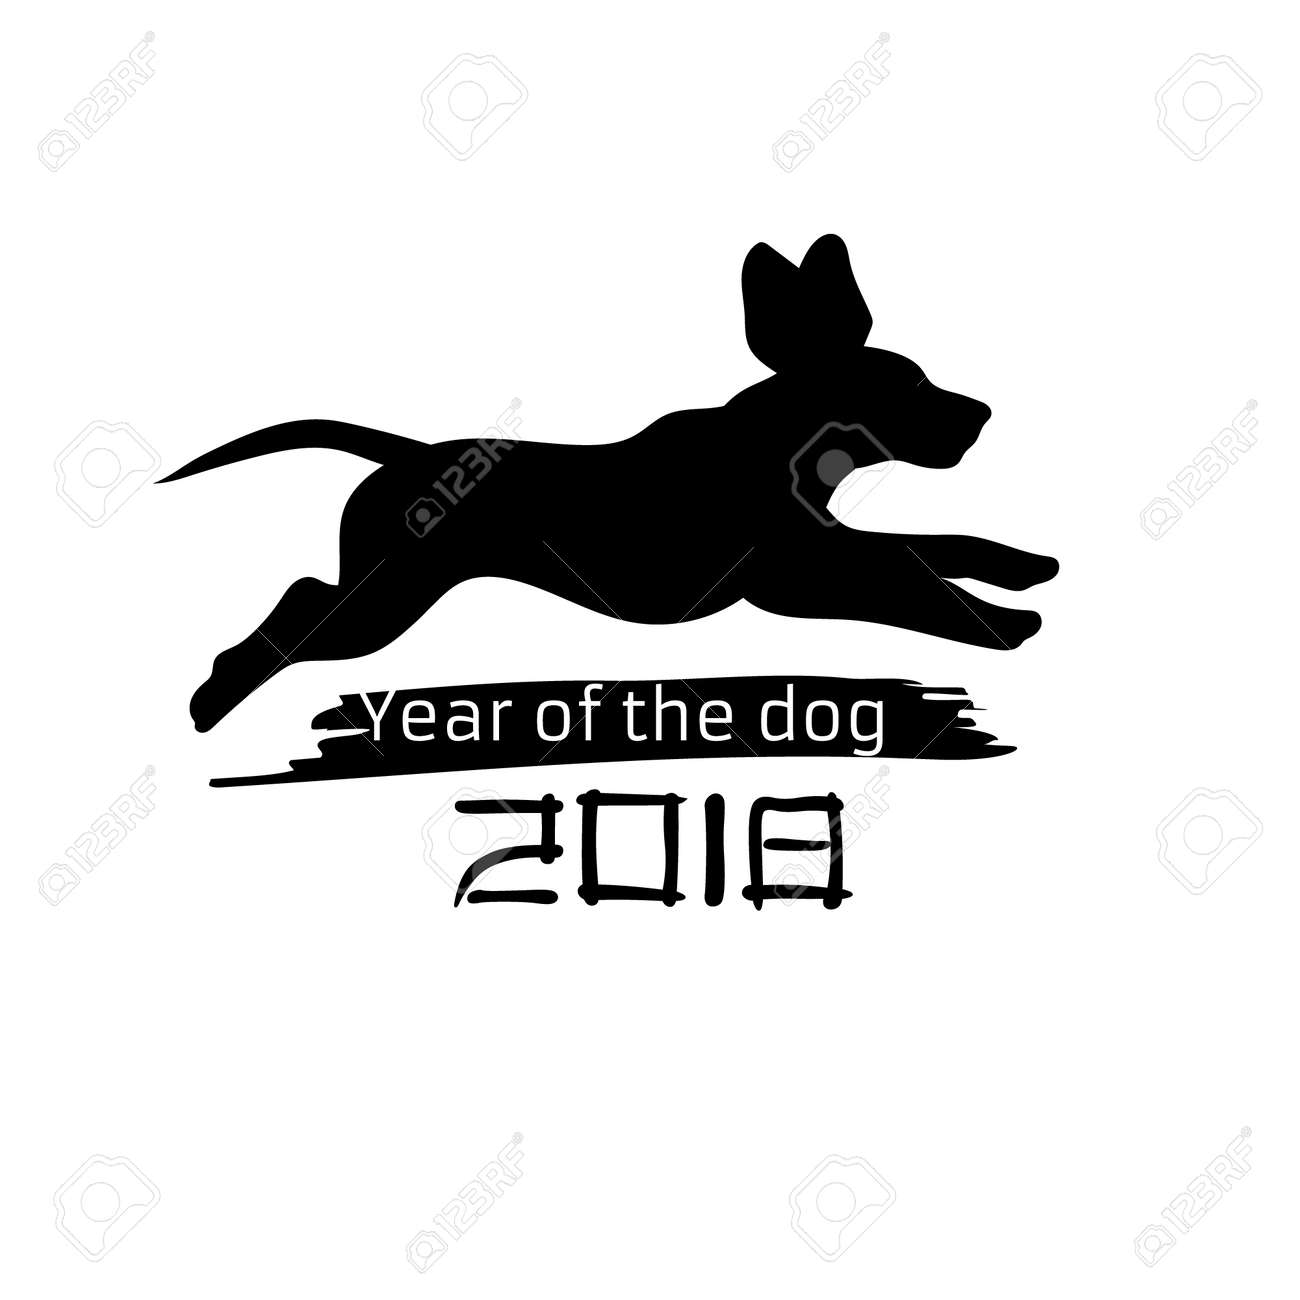 2018 year of the dog silhouette pet new year background hand drawn image